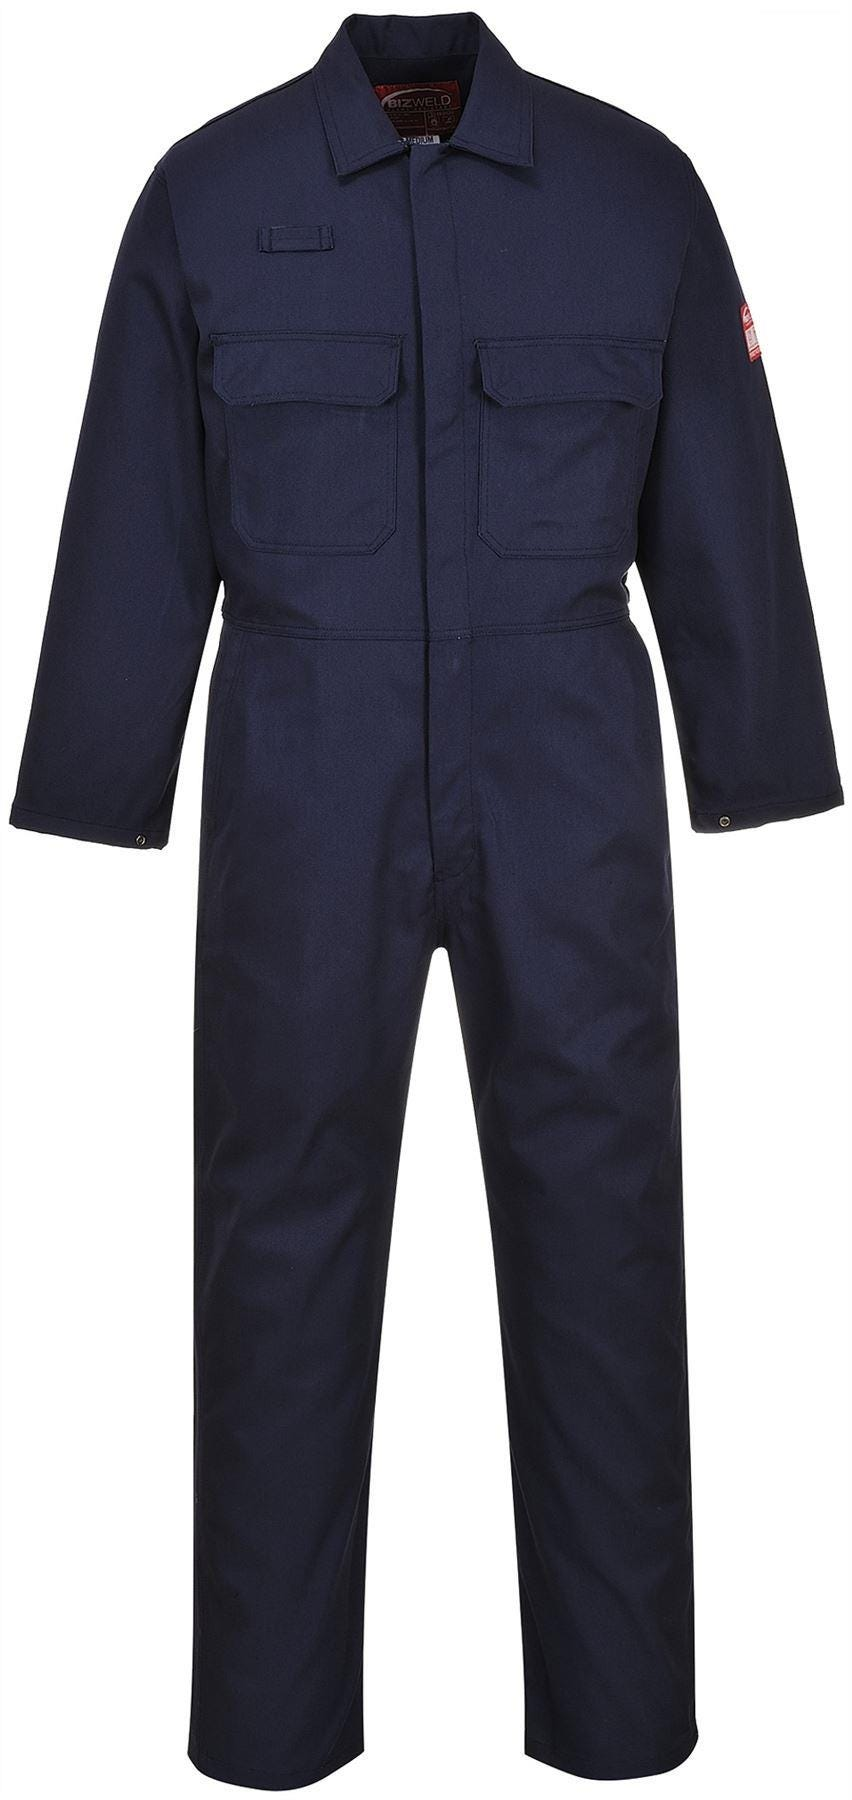 Portwest Bizweld Flame Resistant Coverall - Navy 5XL